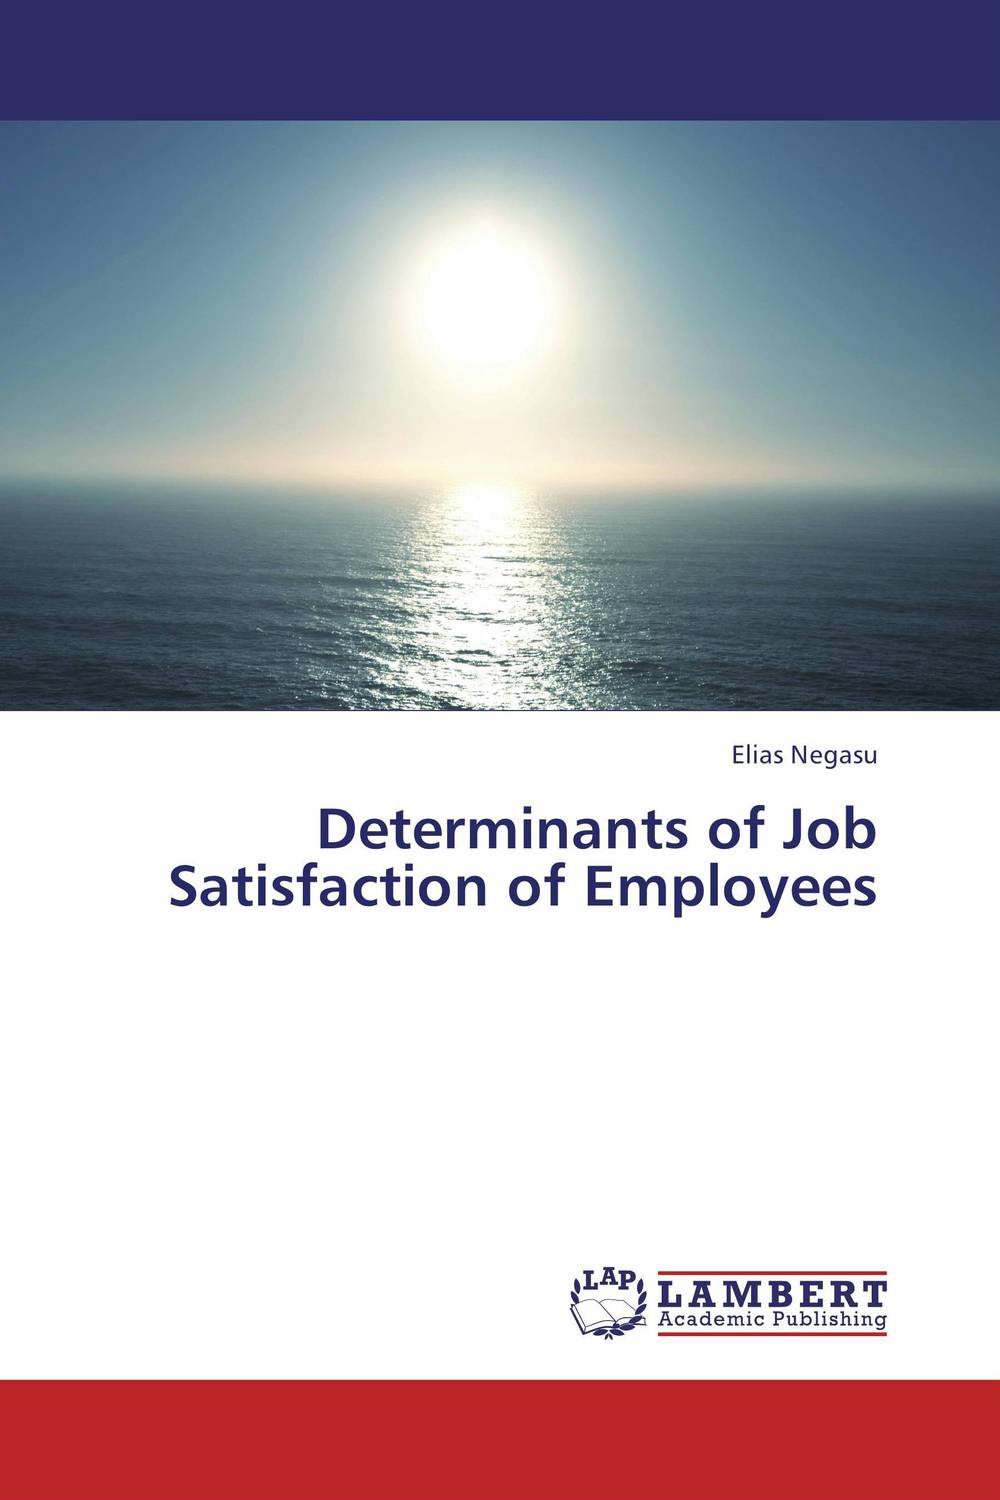 Determinants of Job Satisfaction of Employees impact of job satisfaction on turnover intentions